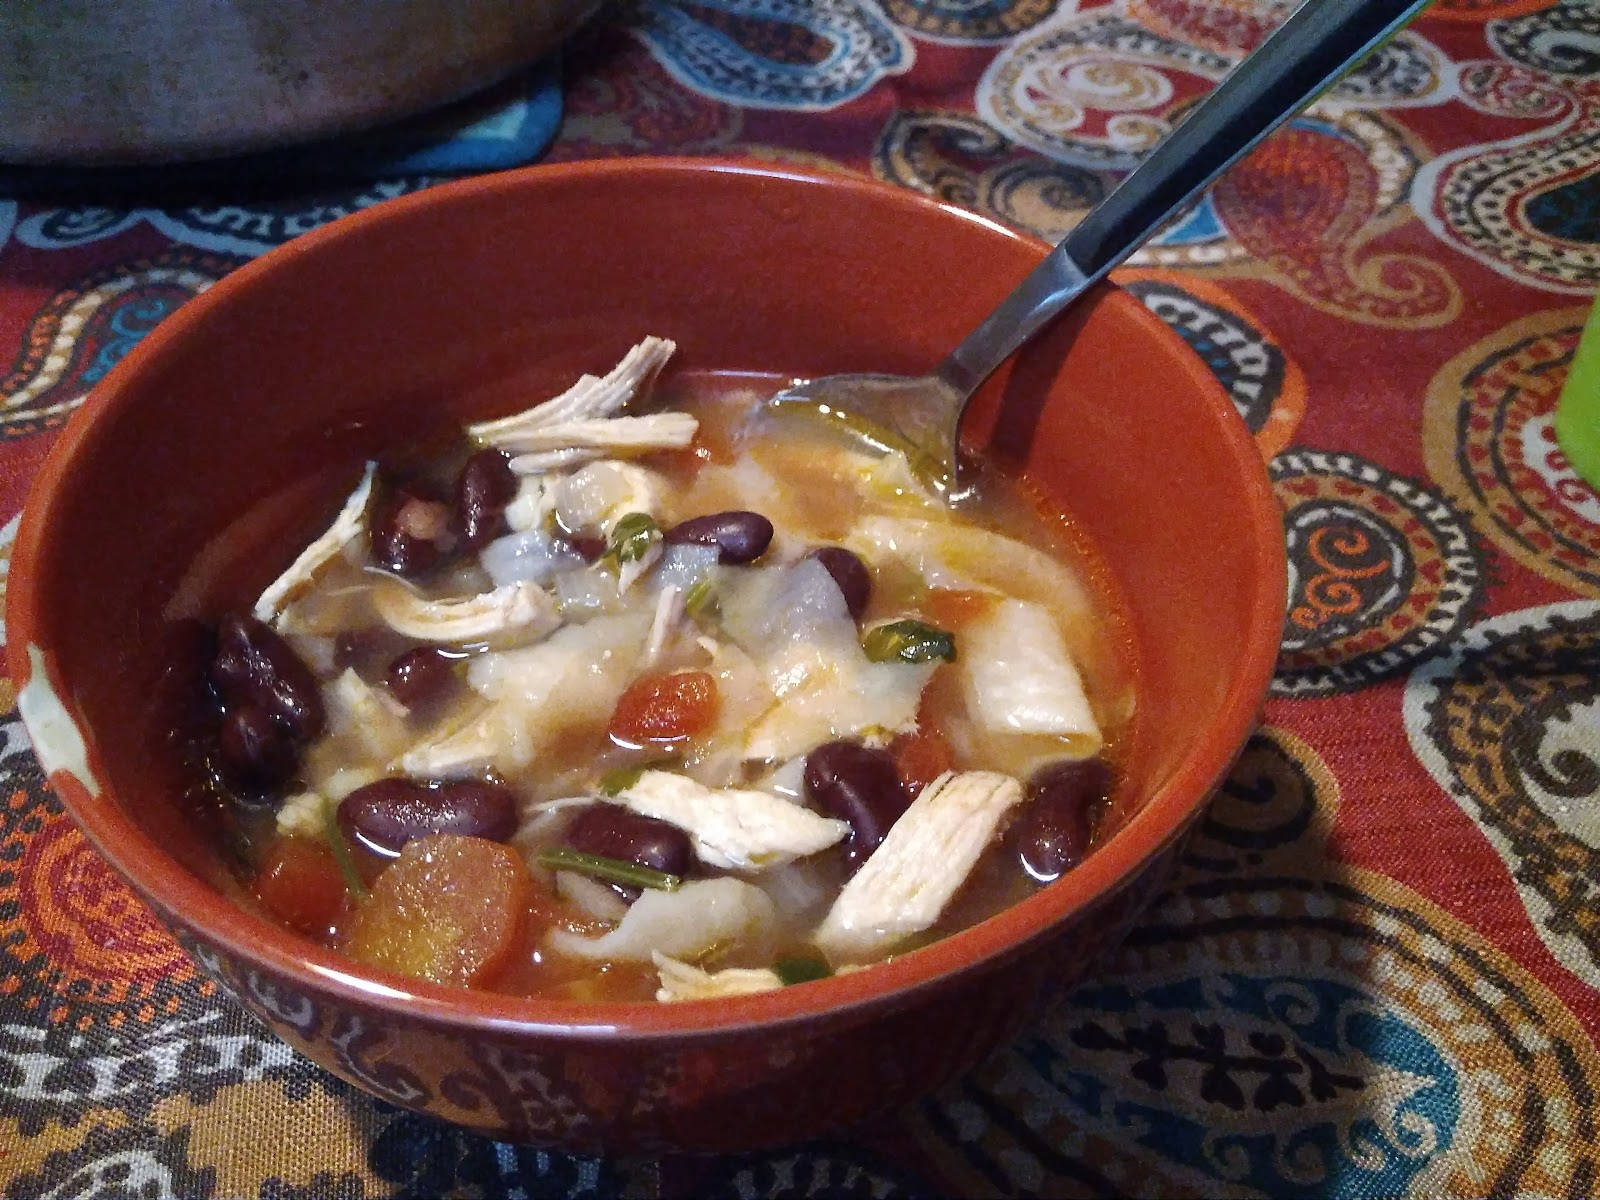 Foodies in a foreign land chicken tortilla soup 2 tbs oil 1 small onion diced 2 tbs garlic minced 1 2 green chilies seeds removed diced optional 6 cups water forumfinder Images